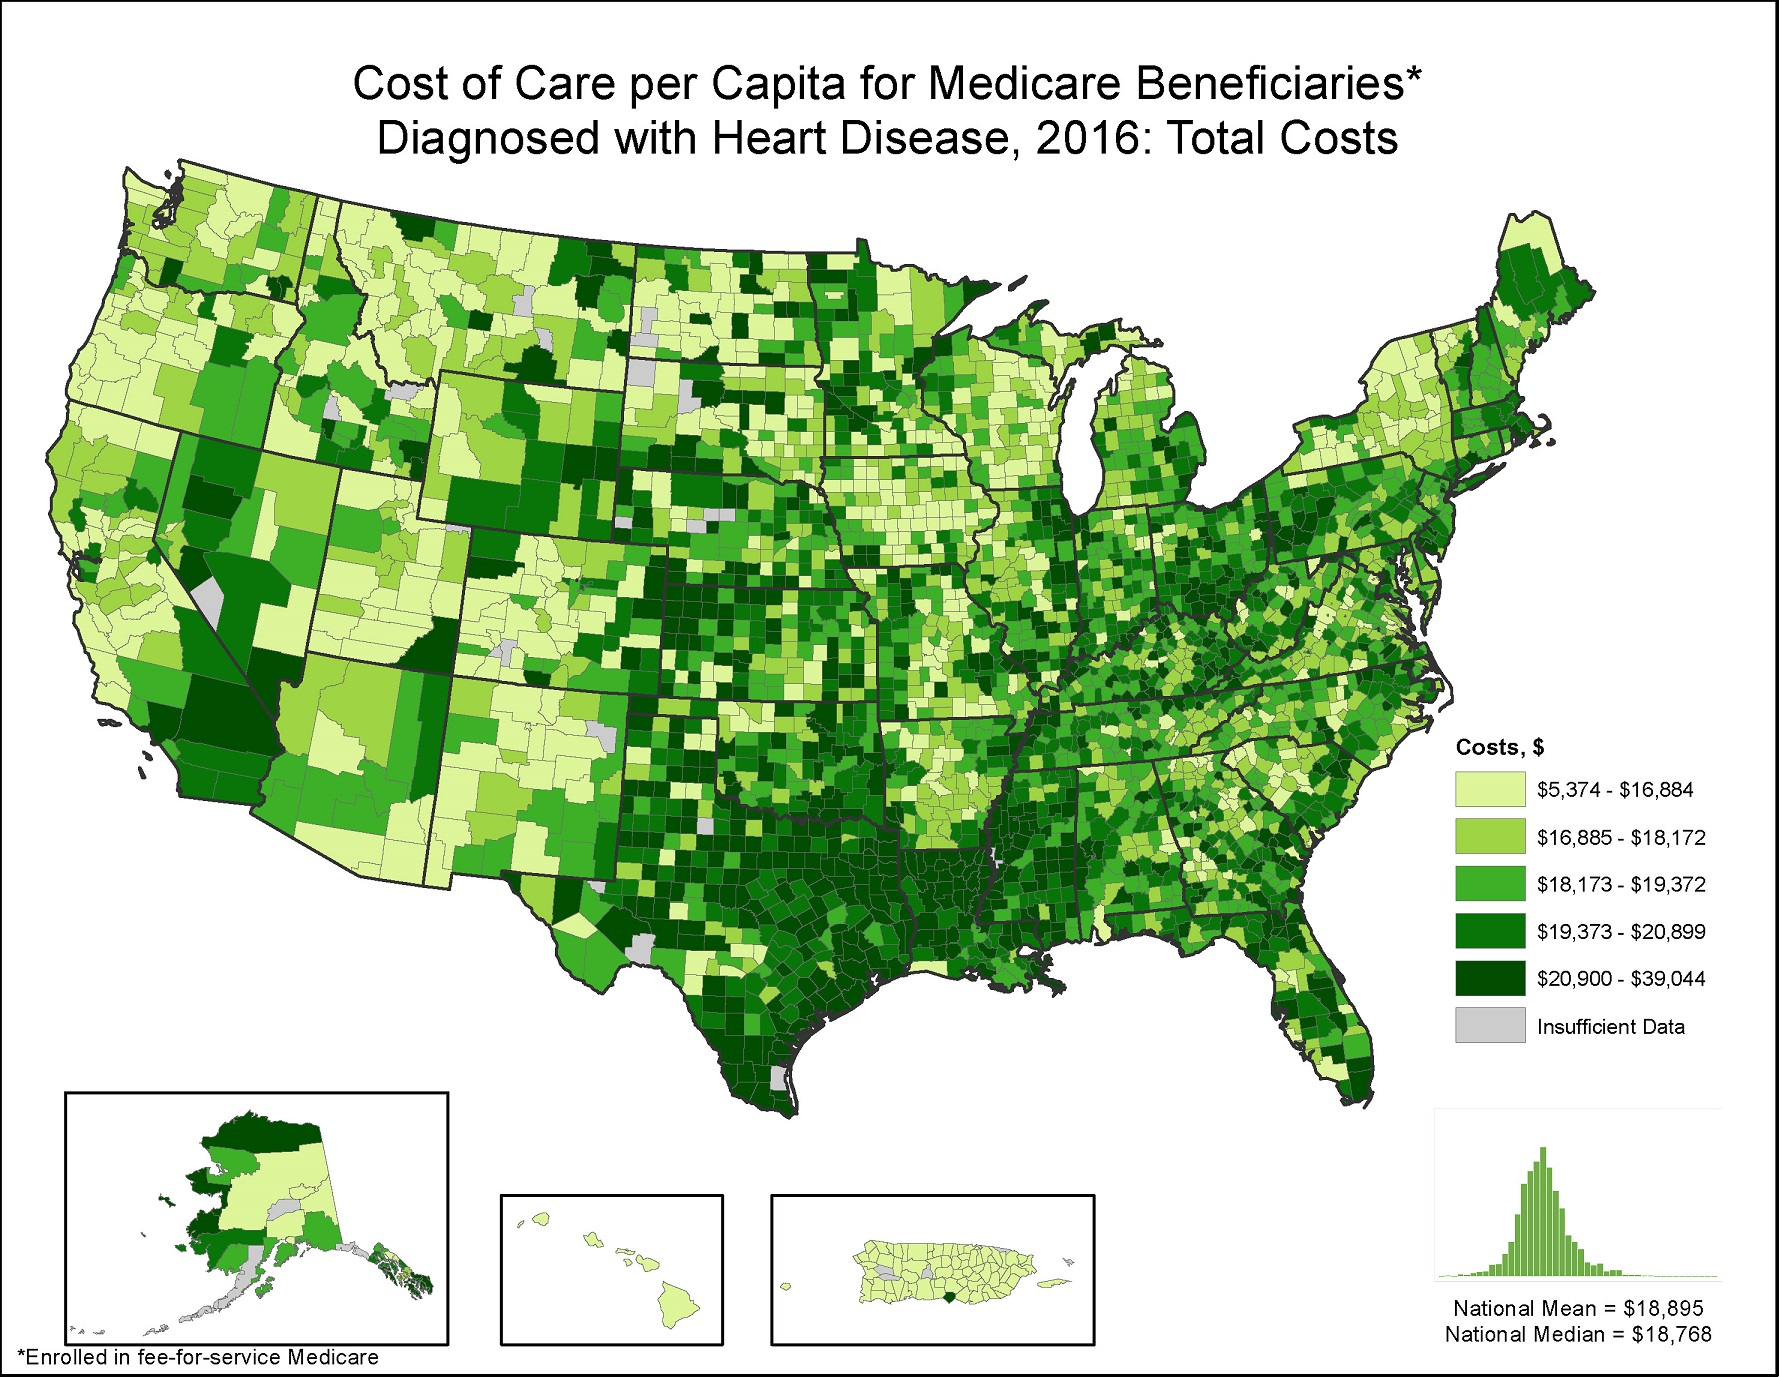 costs of care per capita for ffs medicare beneficiaries diagnosed with heart disease 2015